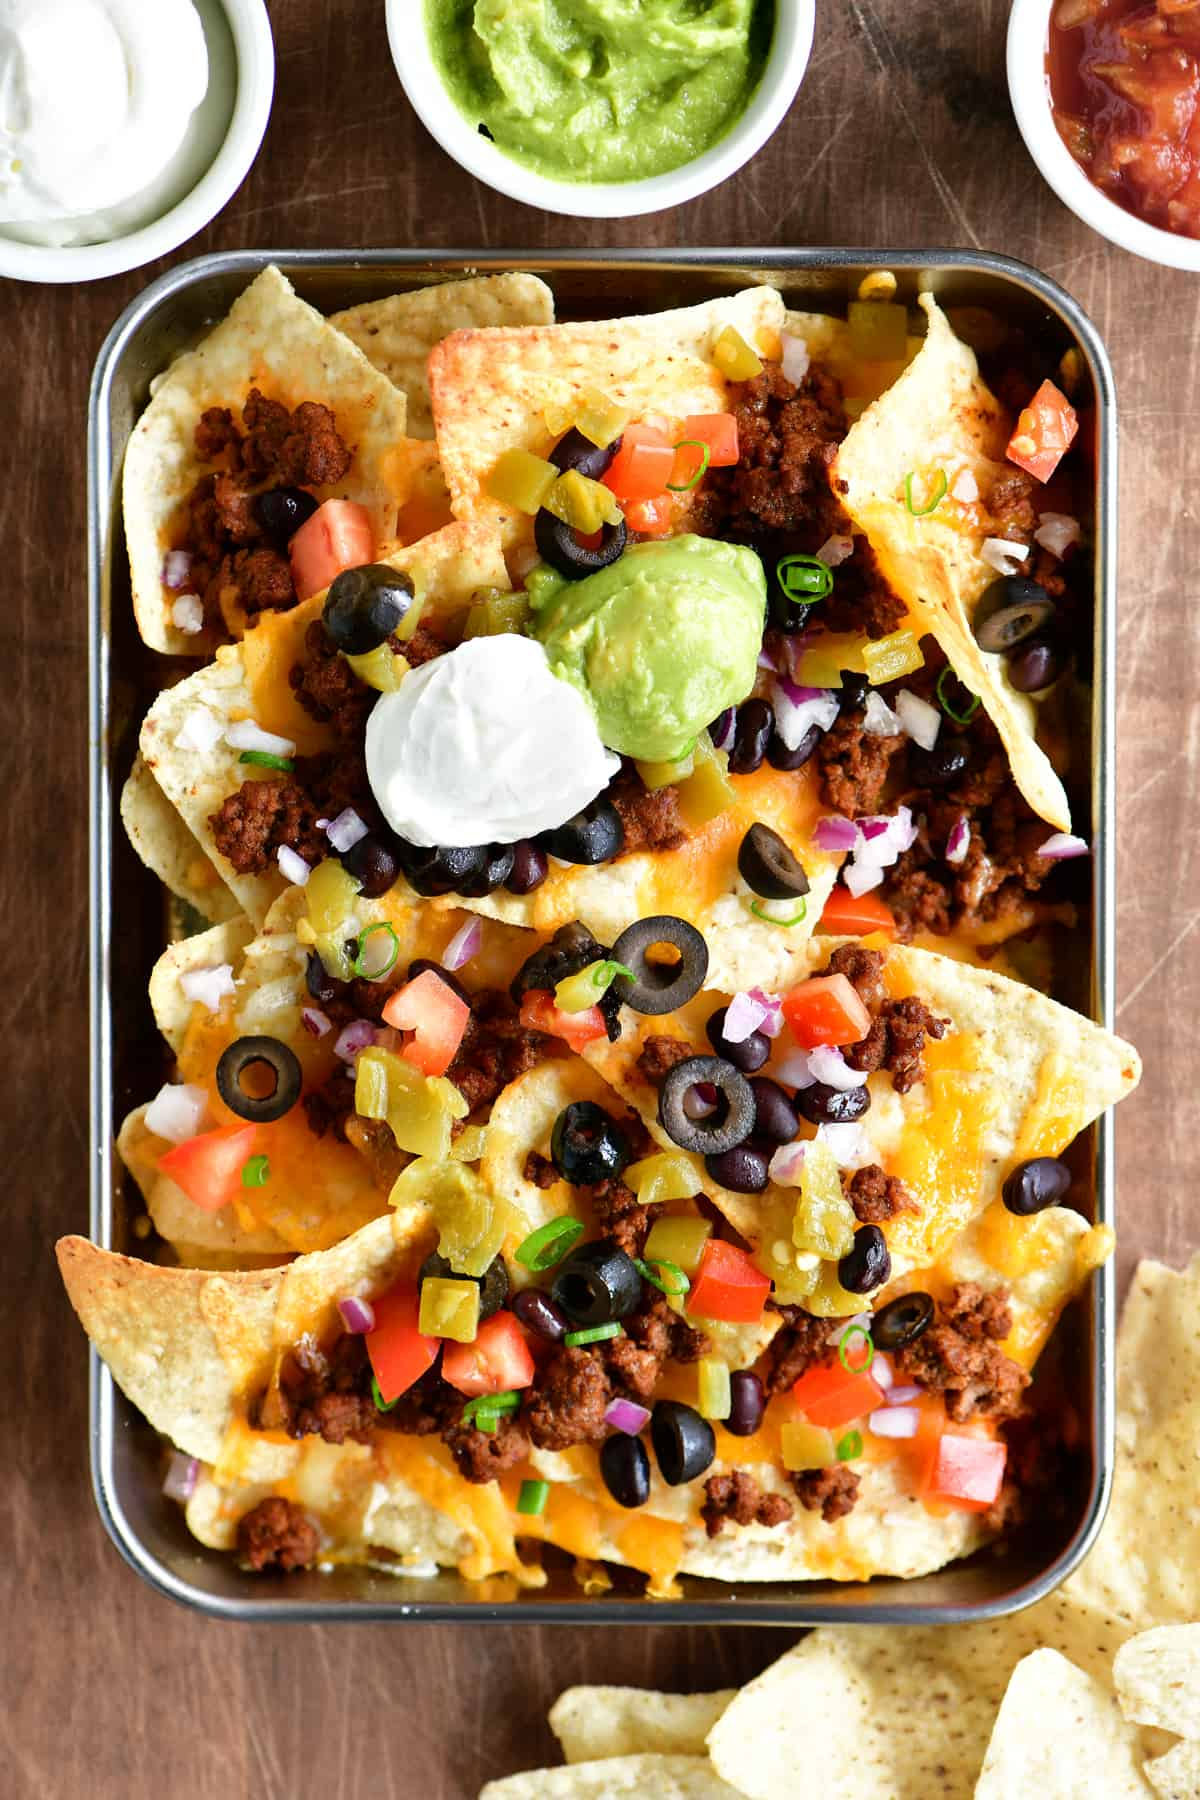 a top-down view of the tray of nachos with sour cream, salsa and guacamole dip in bowls